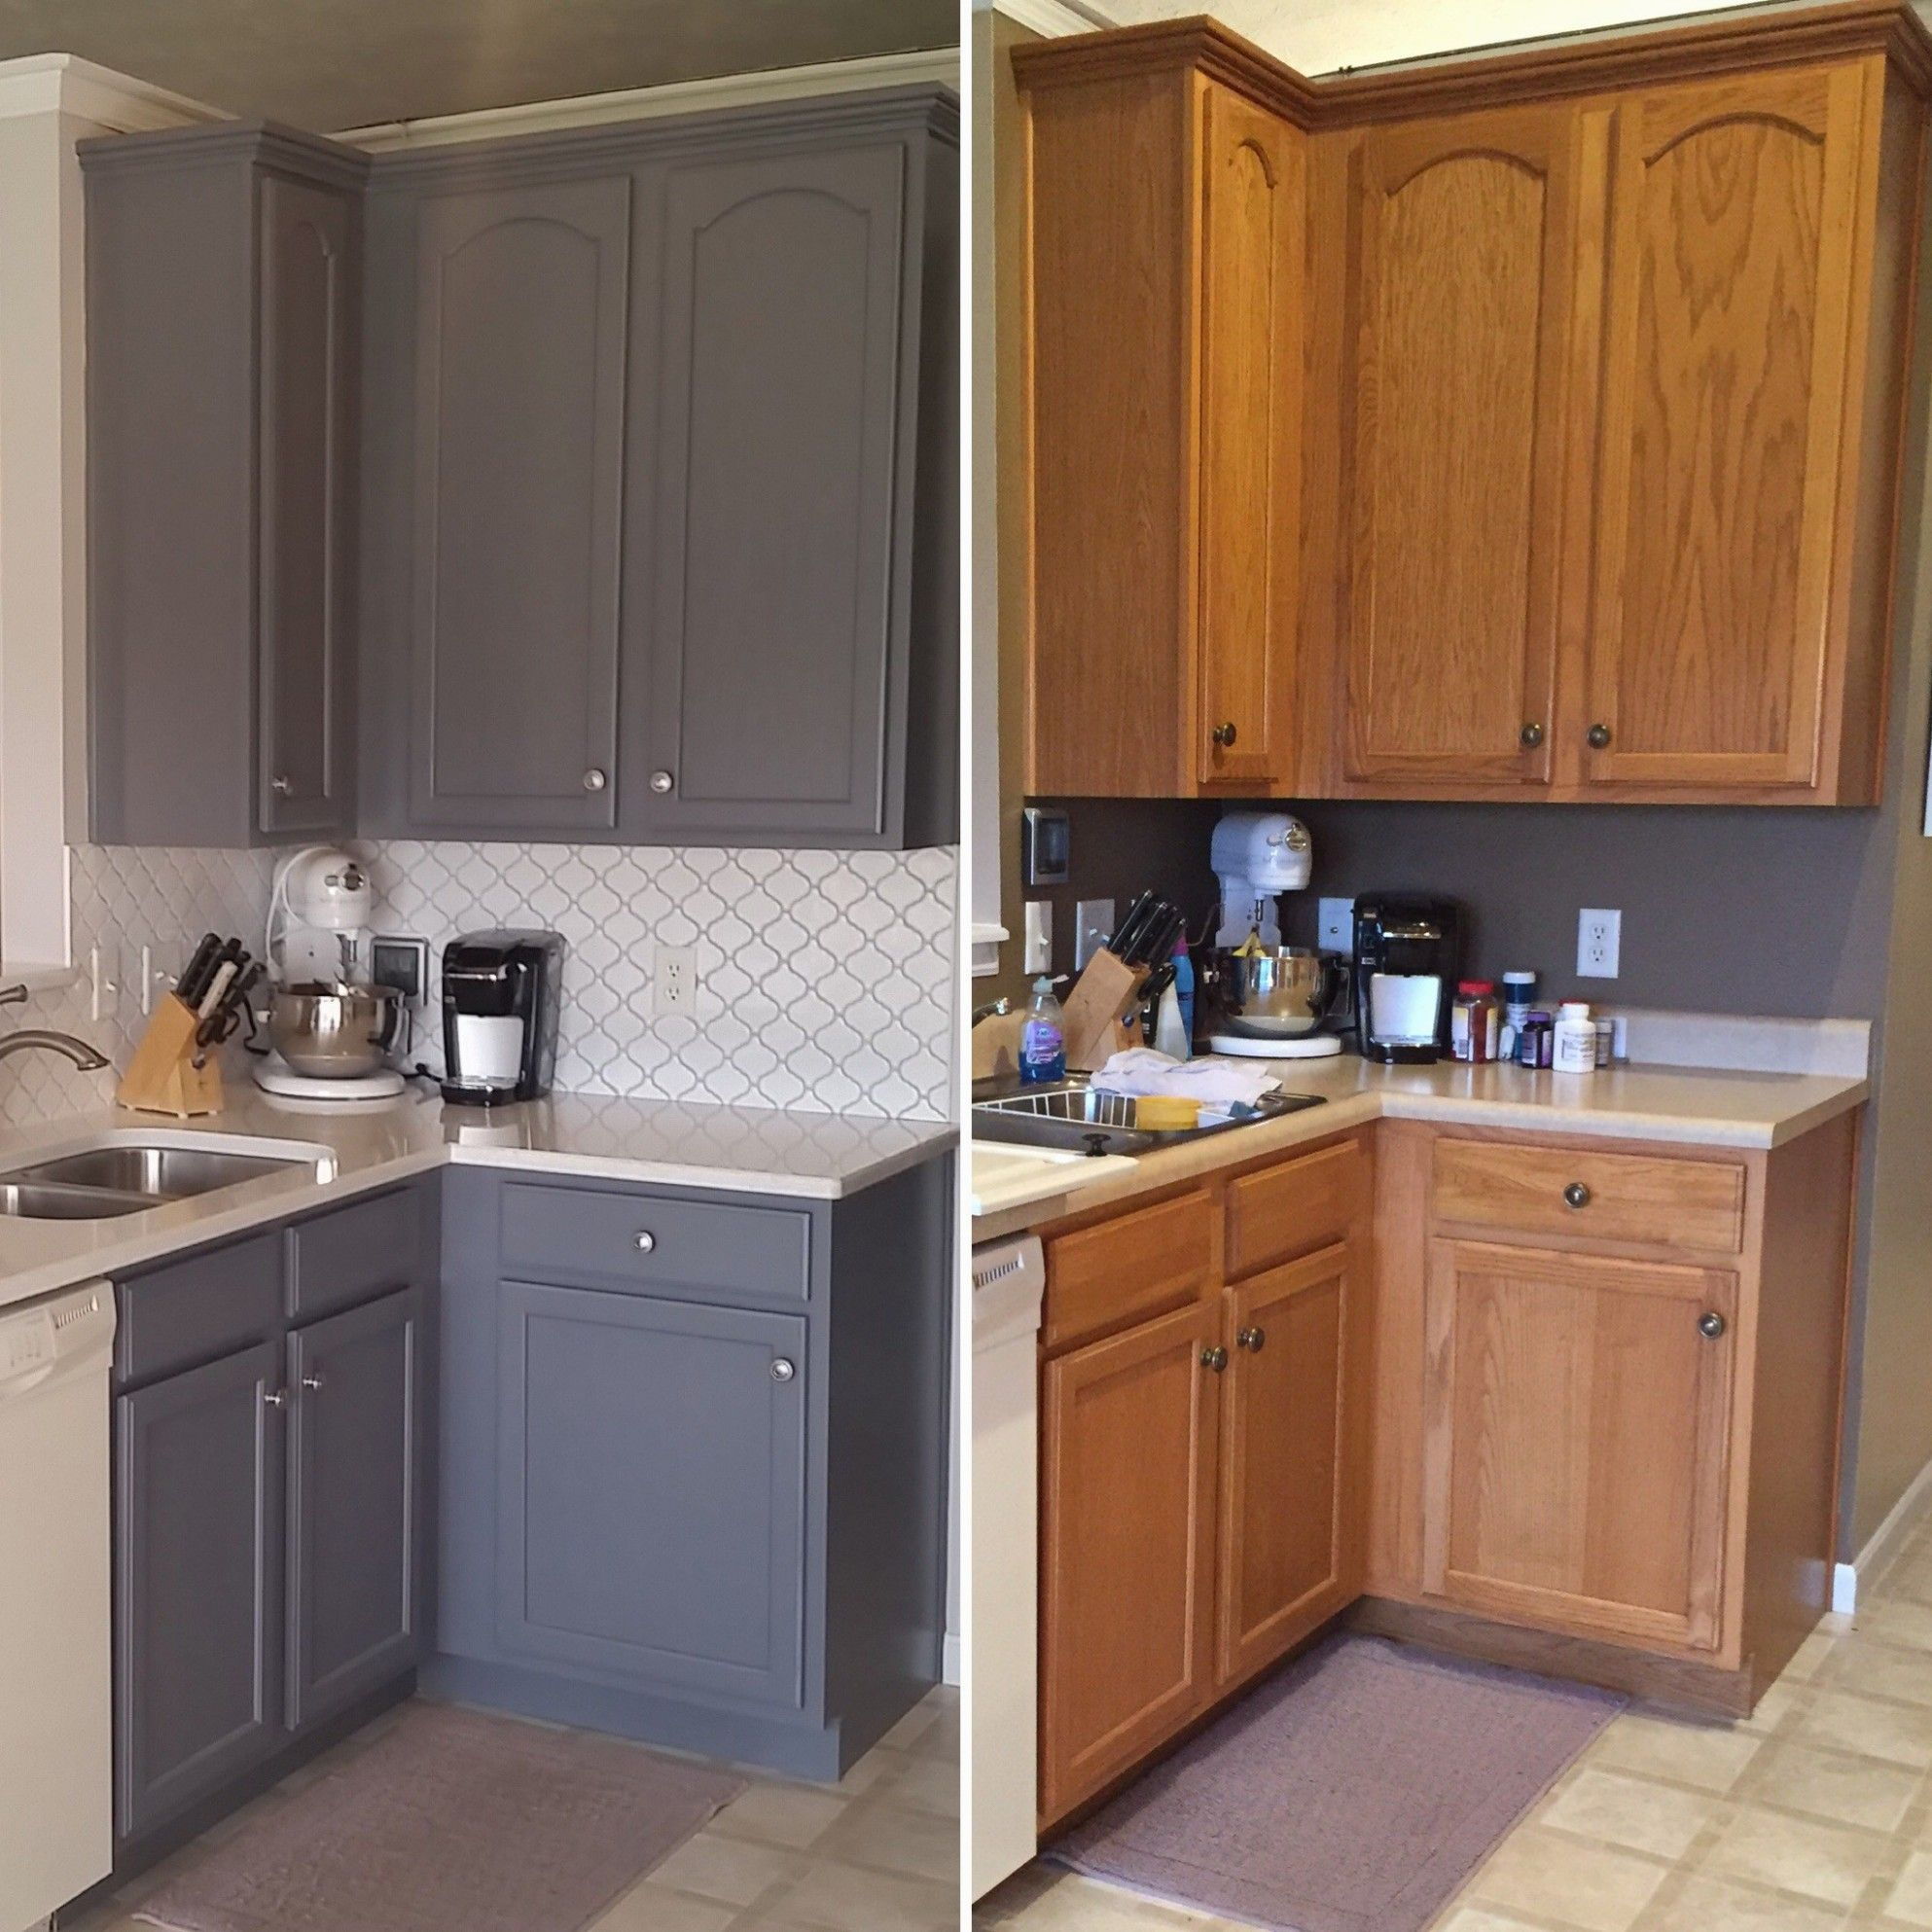 5 Ways Refinishing Oak Cabinets Before And After Can Improve Your Business In 2020 Kitchen Cabinets Kitchen Cabinets For Sale Chalk Paint Kitchen Cabinets